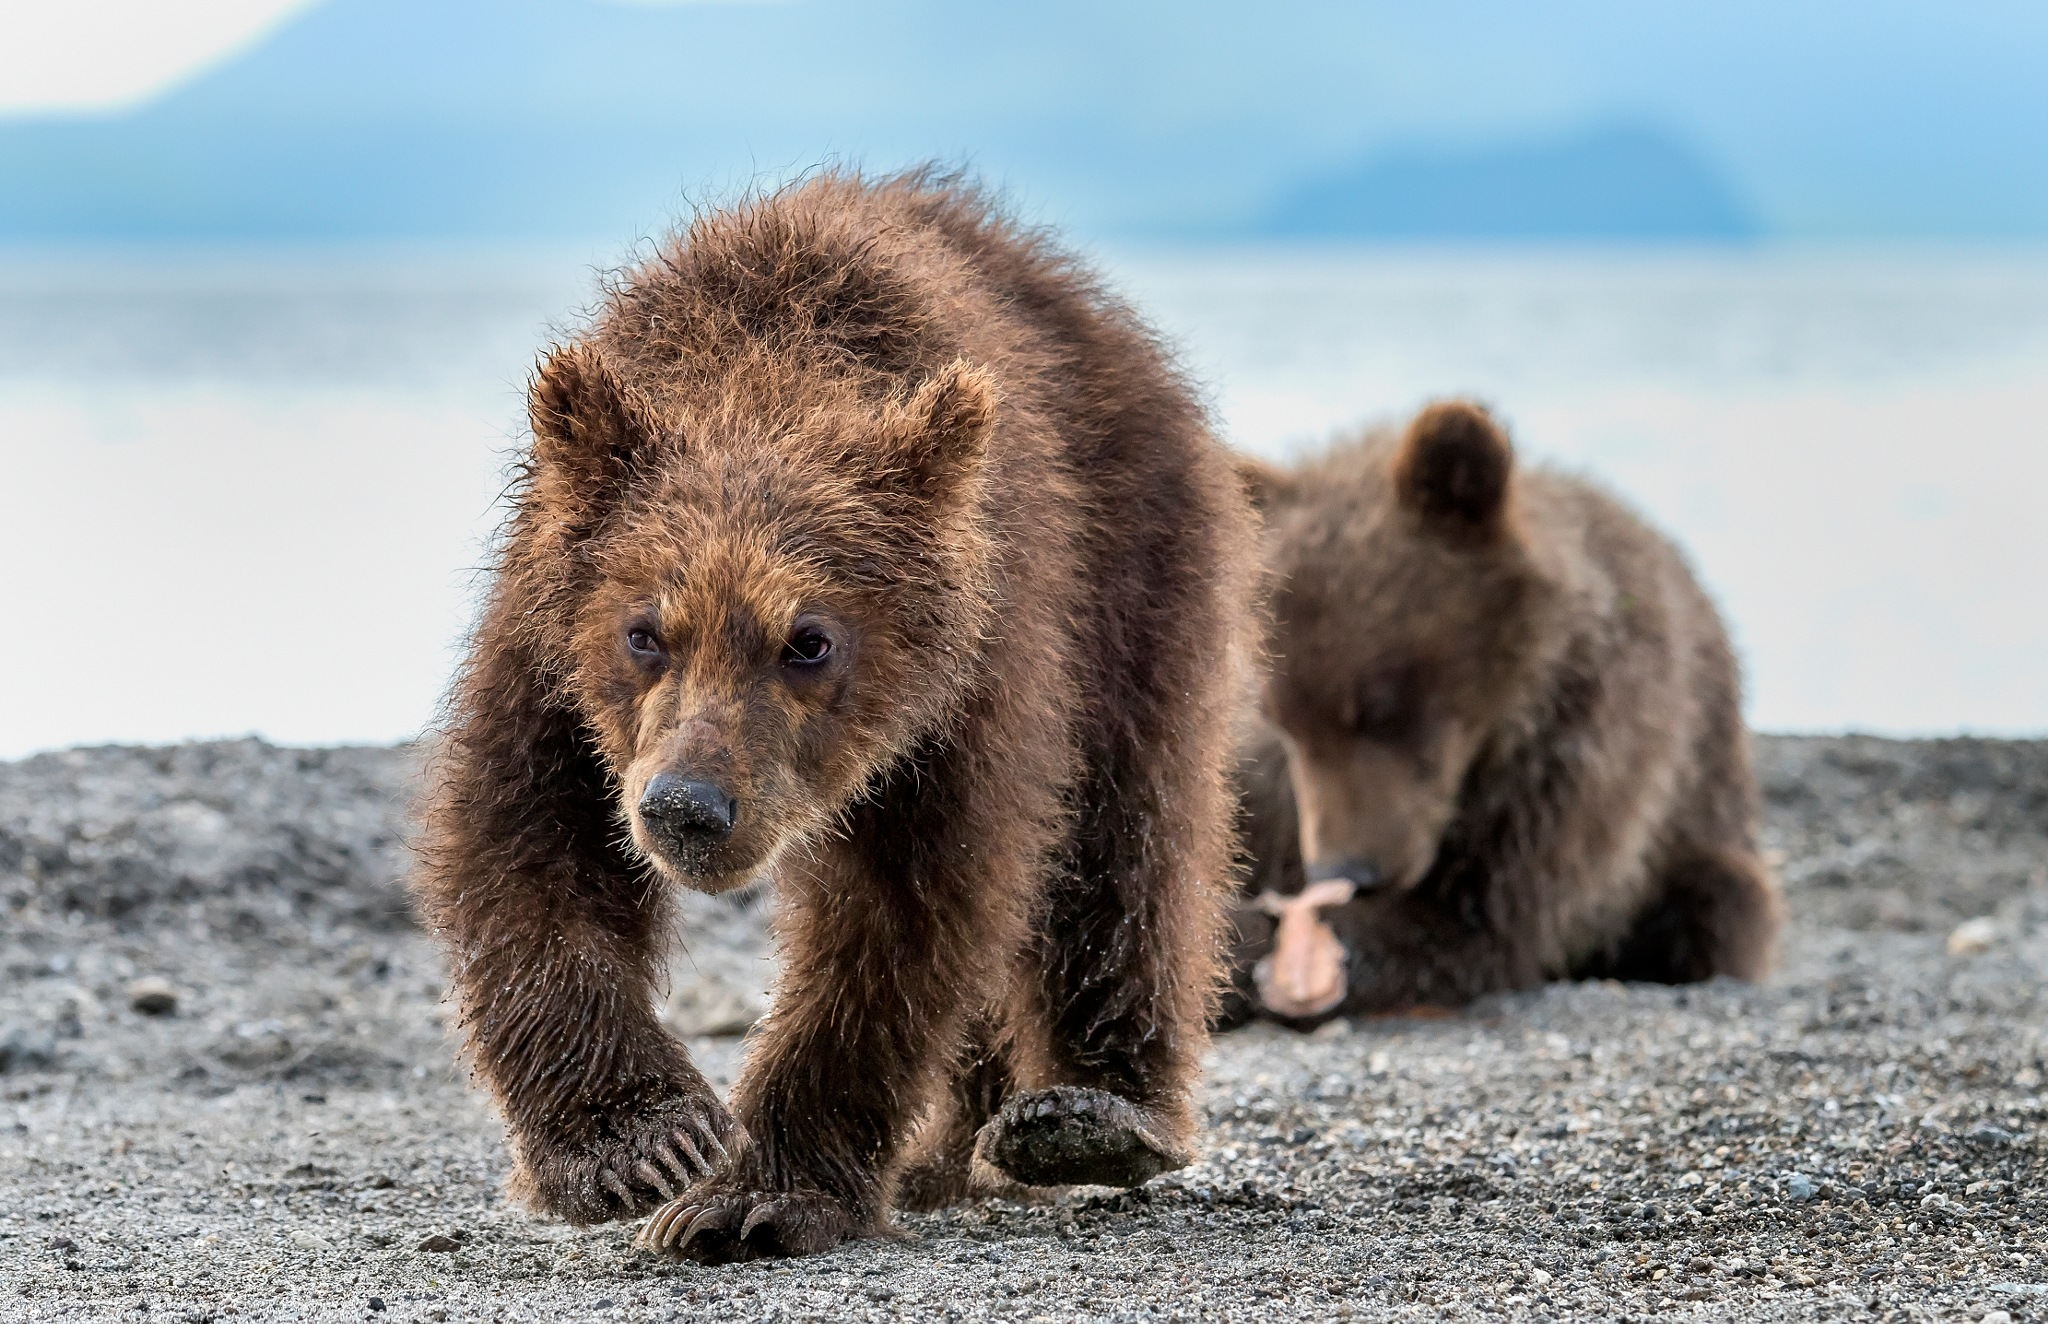 Cubs - Kamchatka, Russia by Giuseppe D'amico